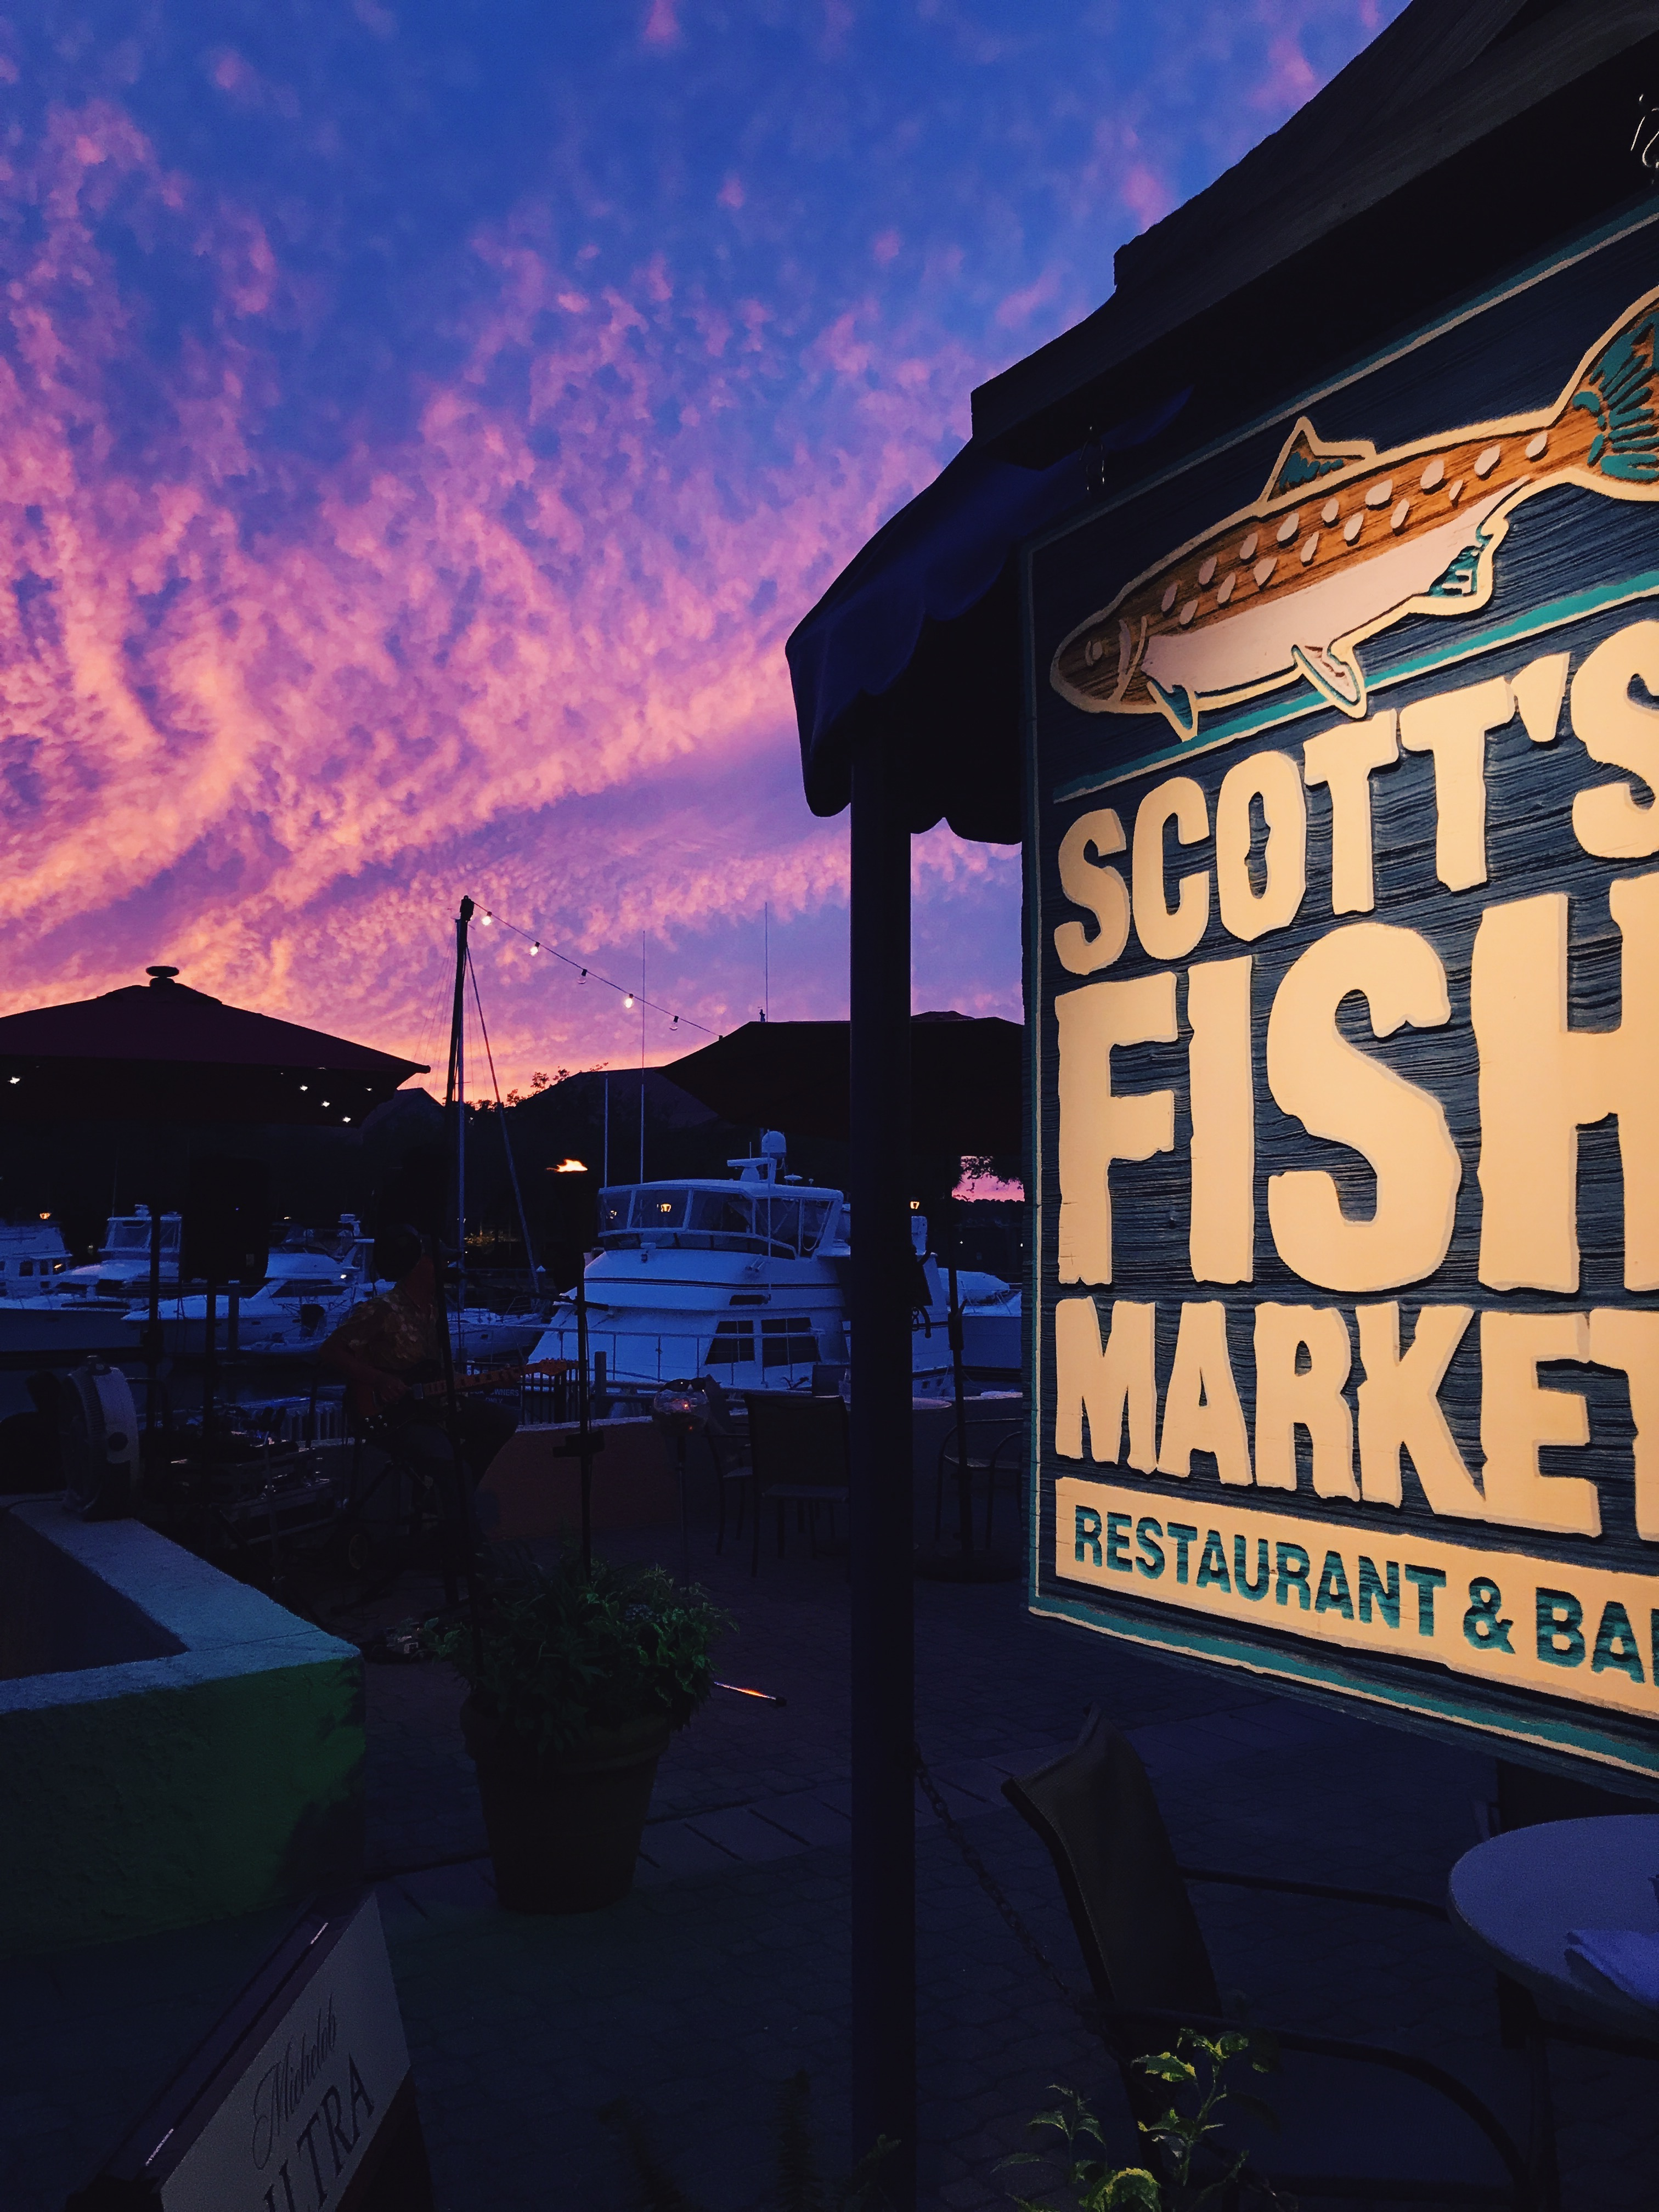 Scott S Fish Market Waterfront Seafood Restaurant Bar